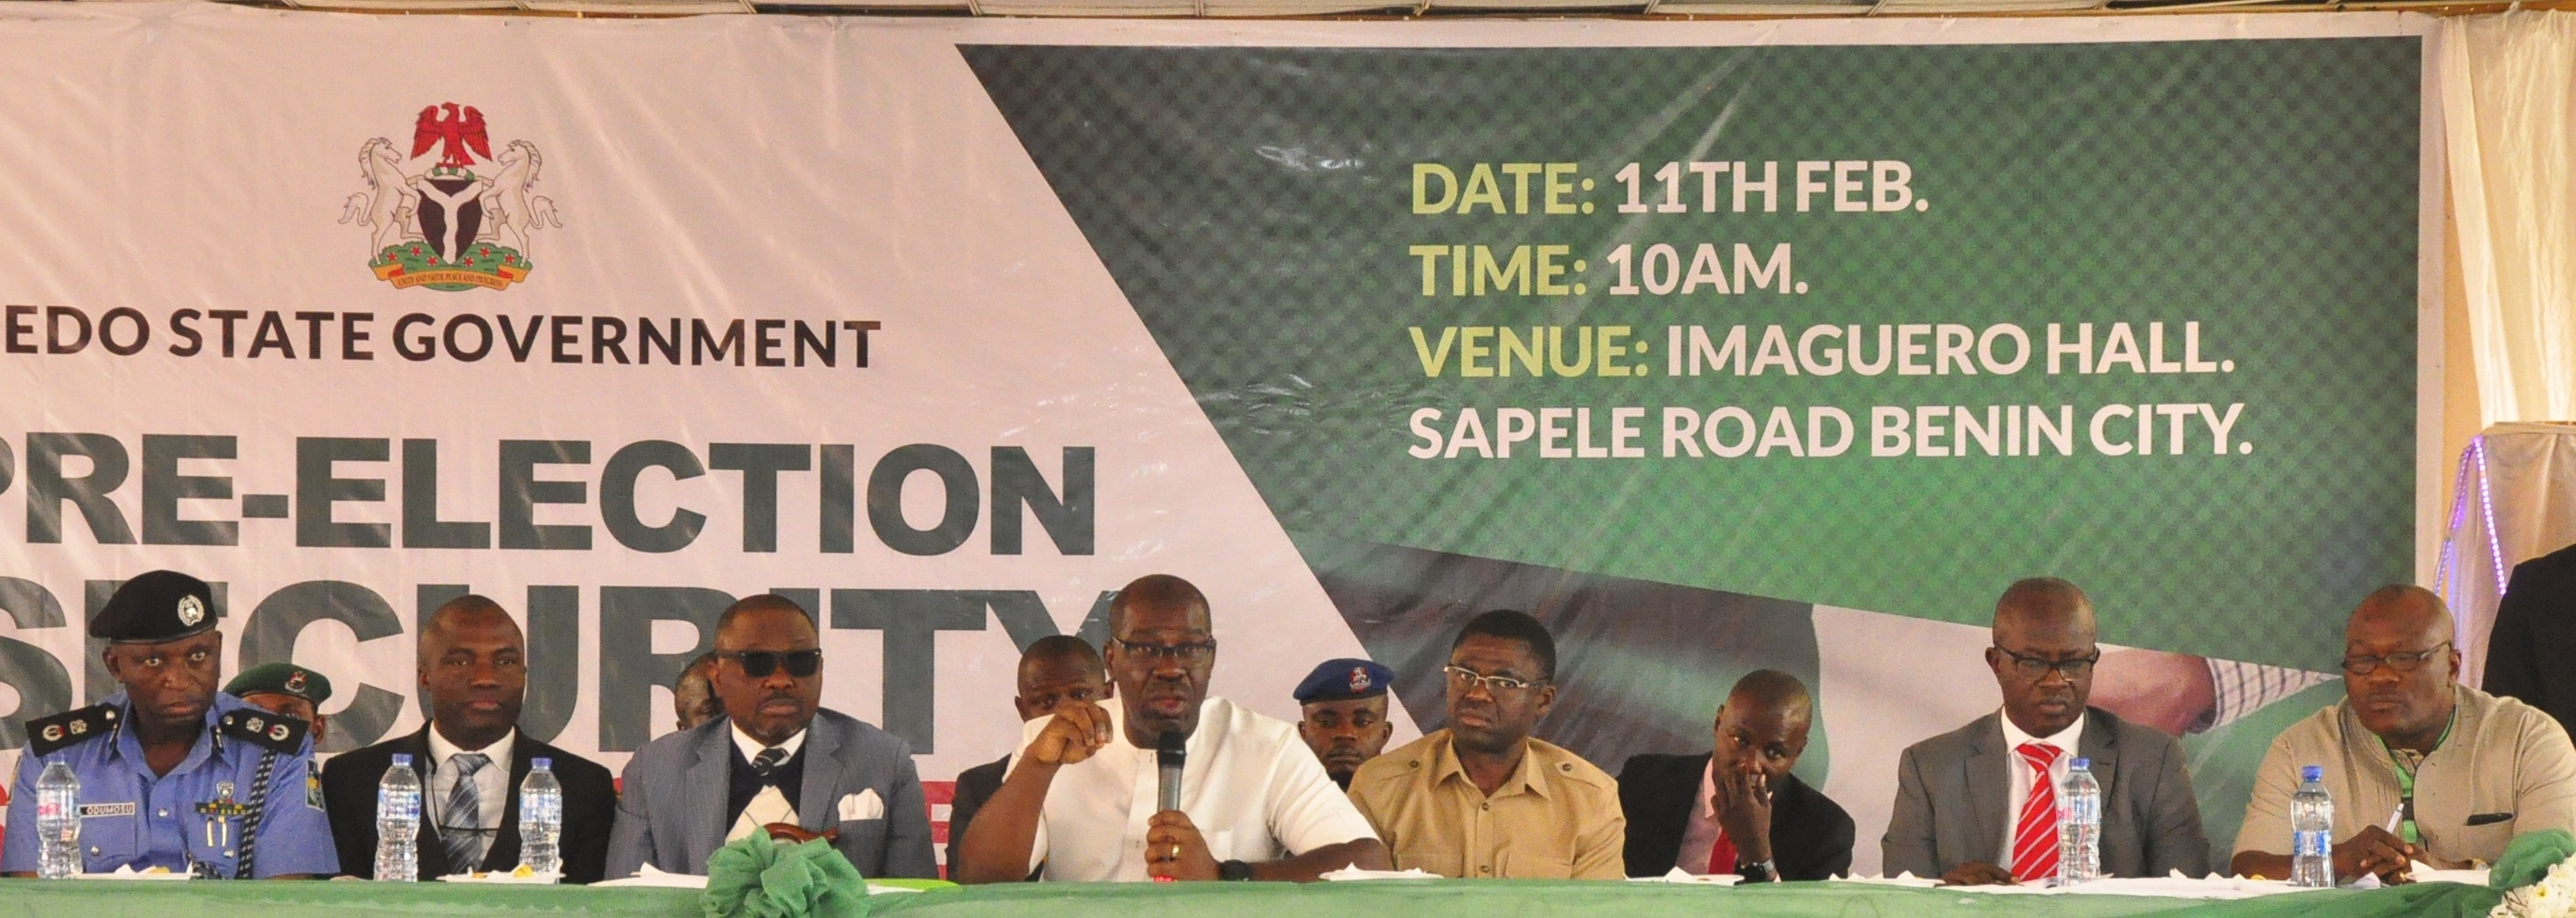 Edo State Governor, Mr. Godwin Obaseki (middle); his deputy, Rt. Hon. Philip Shaibu (3rd right); Edo State Head of Service, Mr. Isaac Ehiozuwa (2nd right); Representative of Edo State Resident Electoral Commissioner, Independent National Electoral Commission (INEC) and Head, Election and Party Monitoring, Mr Kombo Briggs (right); Deputy Speaker, Edo State House of Assembly, Hon Justine Okonobo (3rd left); Edo State Commissioner of Police, Mr. Hakeem Odumosu (left); and representative of the Office of the National Security Adviser (NSA), Lieutenant Col. Gbenga Owojaiye (2nd left), at the Pre-Election Security Stakeholders' Town Hall Meeting, themed: 'That We May Have Peaceful Election in Edo State,' which was held at Imaguero College, in Benin City on Monday, February 11, 2019